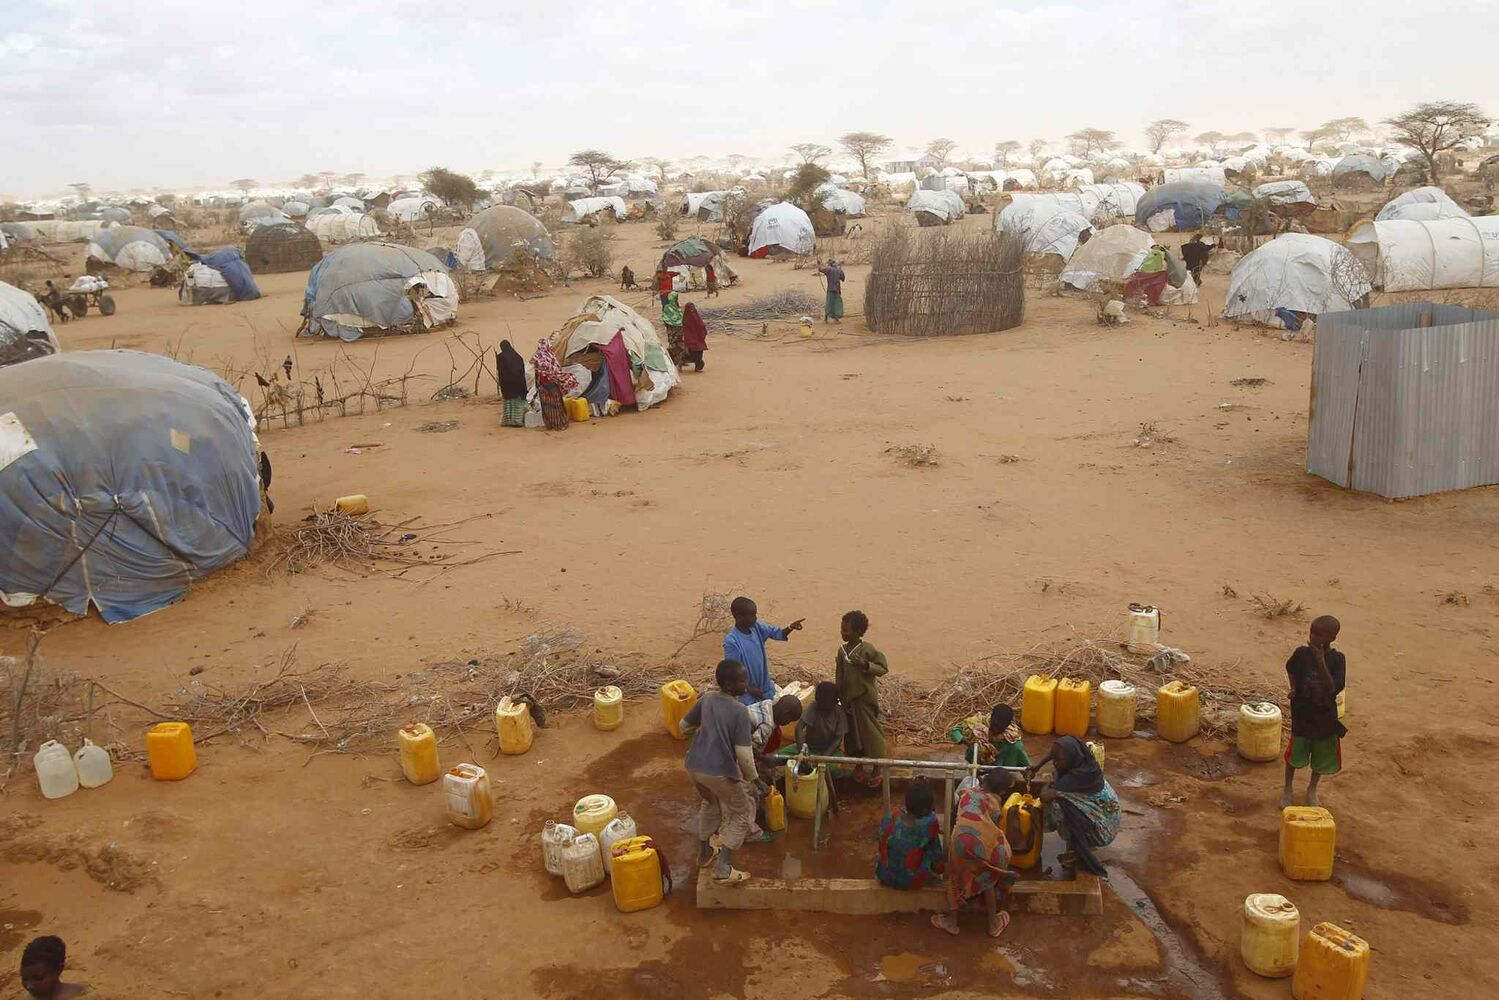 In this photo taken in August, 2011, Somali refugees collect water at the LFO refugee camp outside Dadaab, eastern Kenya, 100 kilometers from the Somali border. Built in 1991 for 90,000 people, the camp has swelled to more than 400,000 registered refugees because of Somalia's long-running conflict and now its famine. Another 40,000 are waiting for official registration.